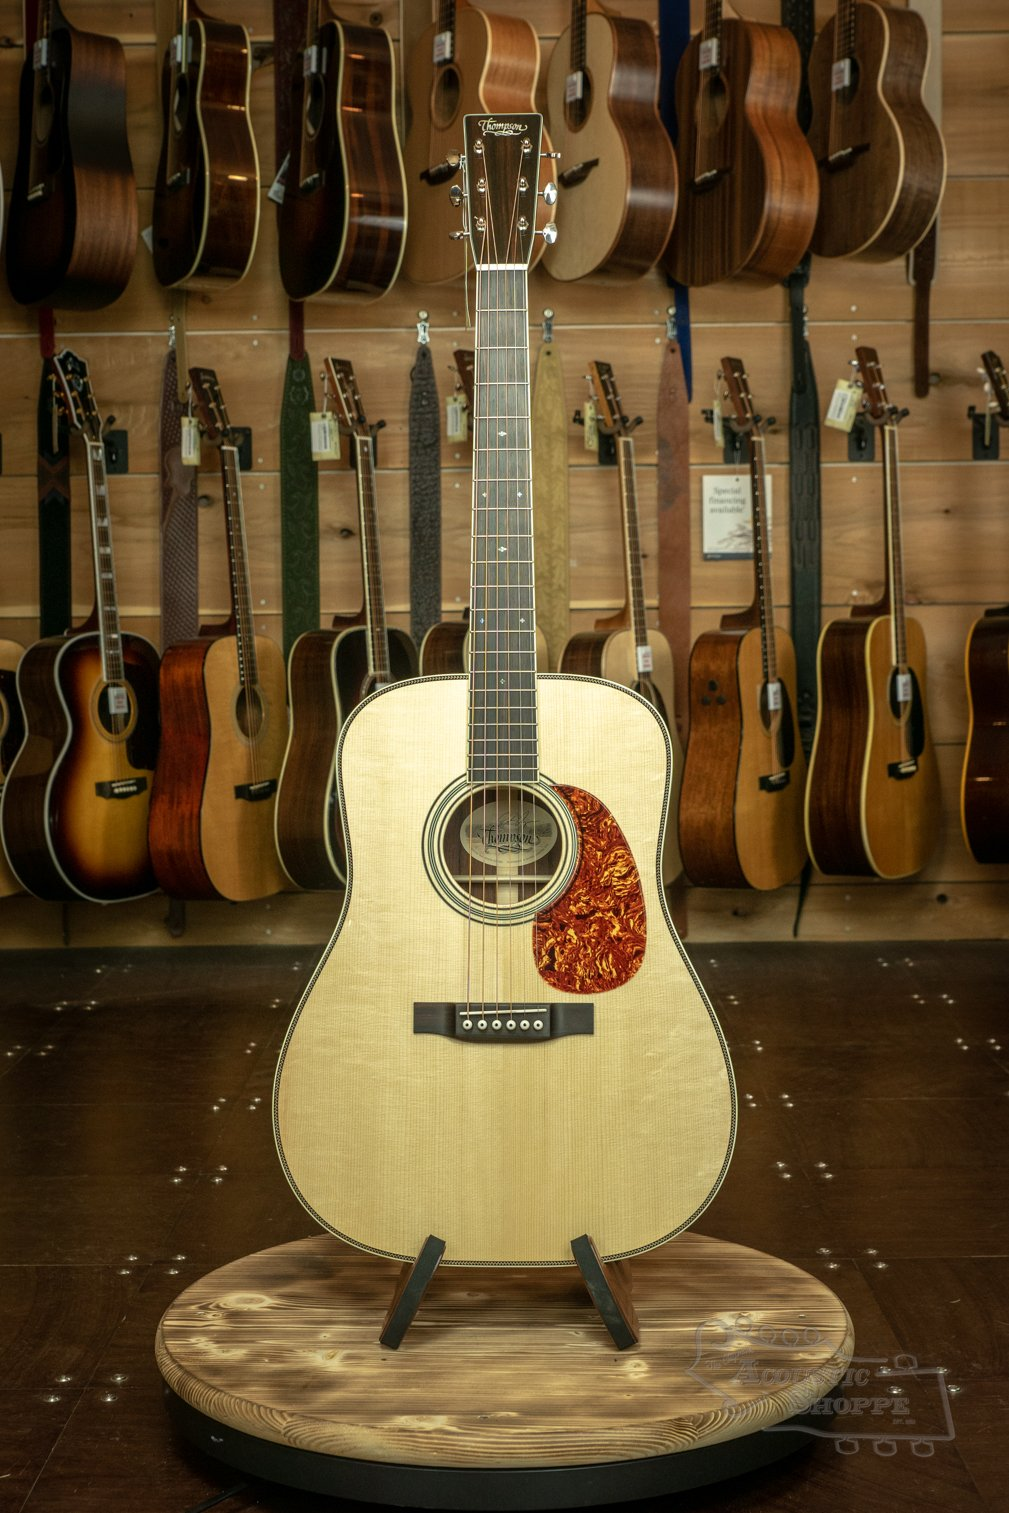 Preston Thompson D-MAD/ADI Madagascar Rosewood Custom w/ Bound Fretboard and Bound Peghead Acoustic Guitar #1565